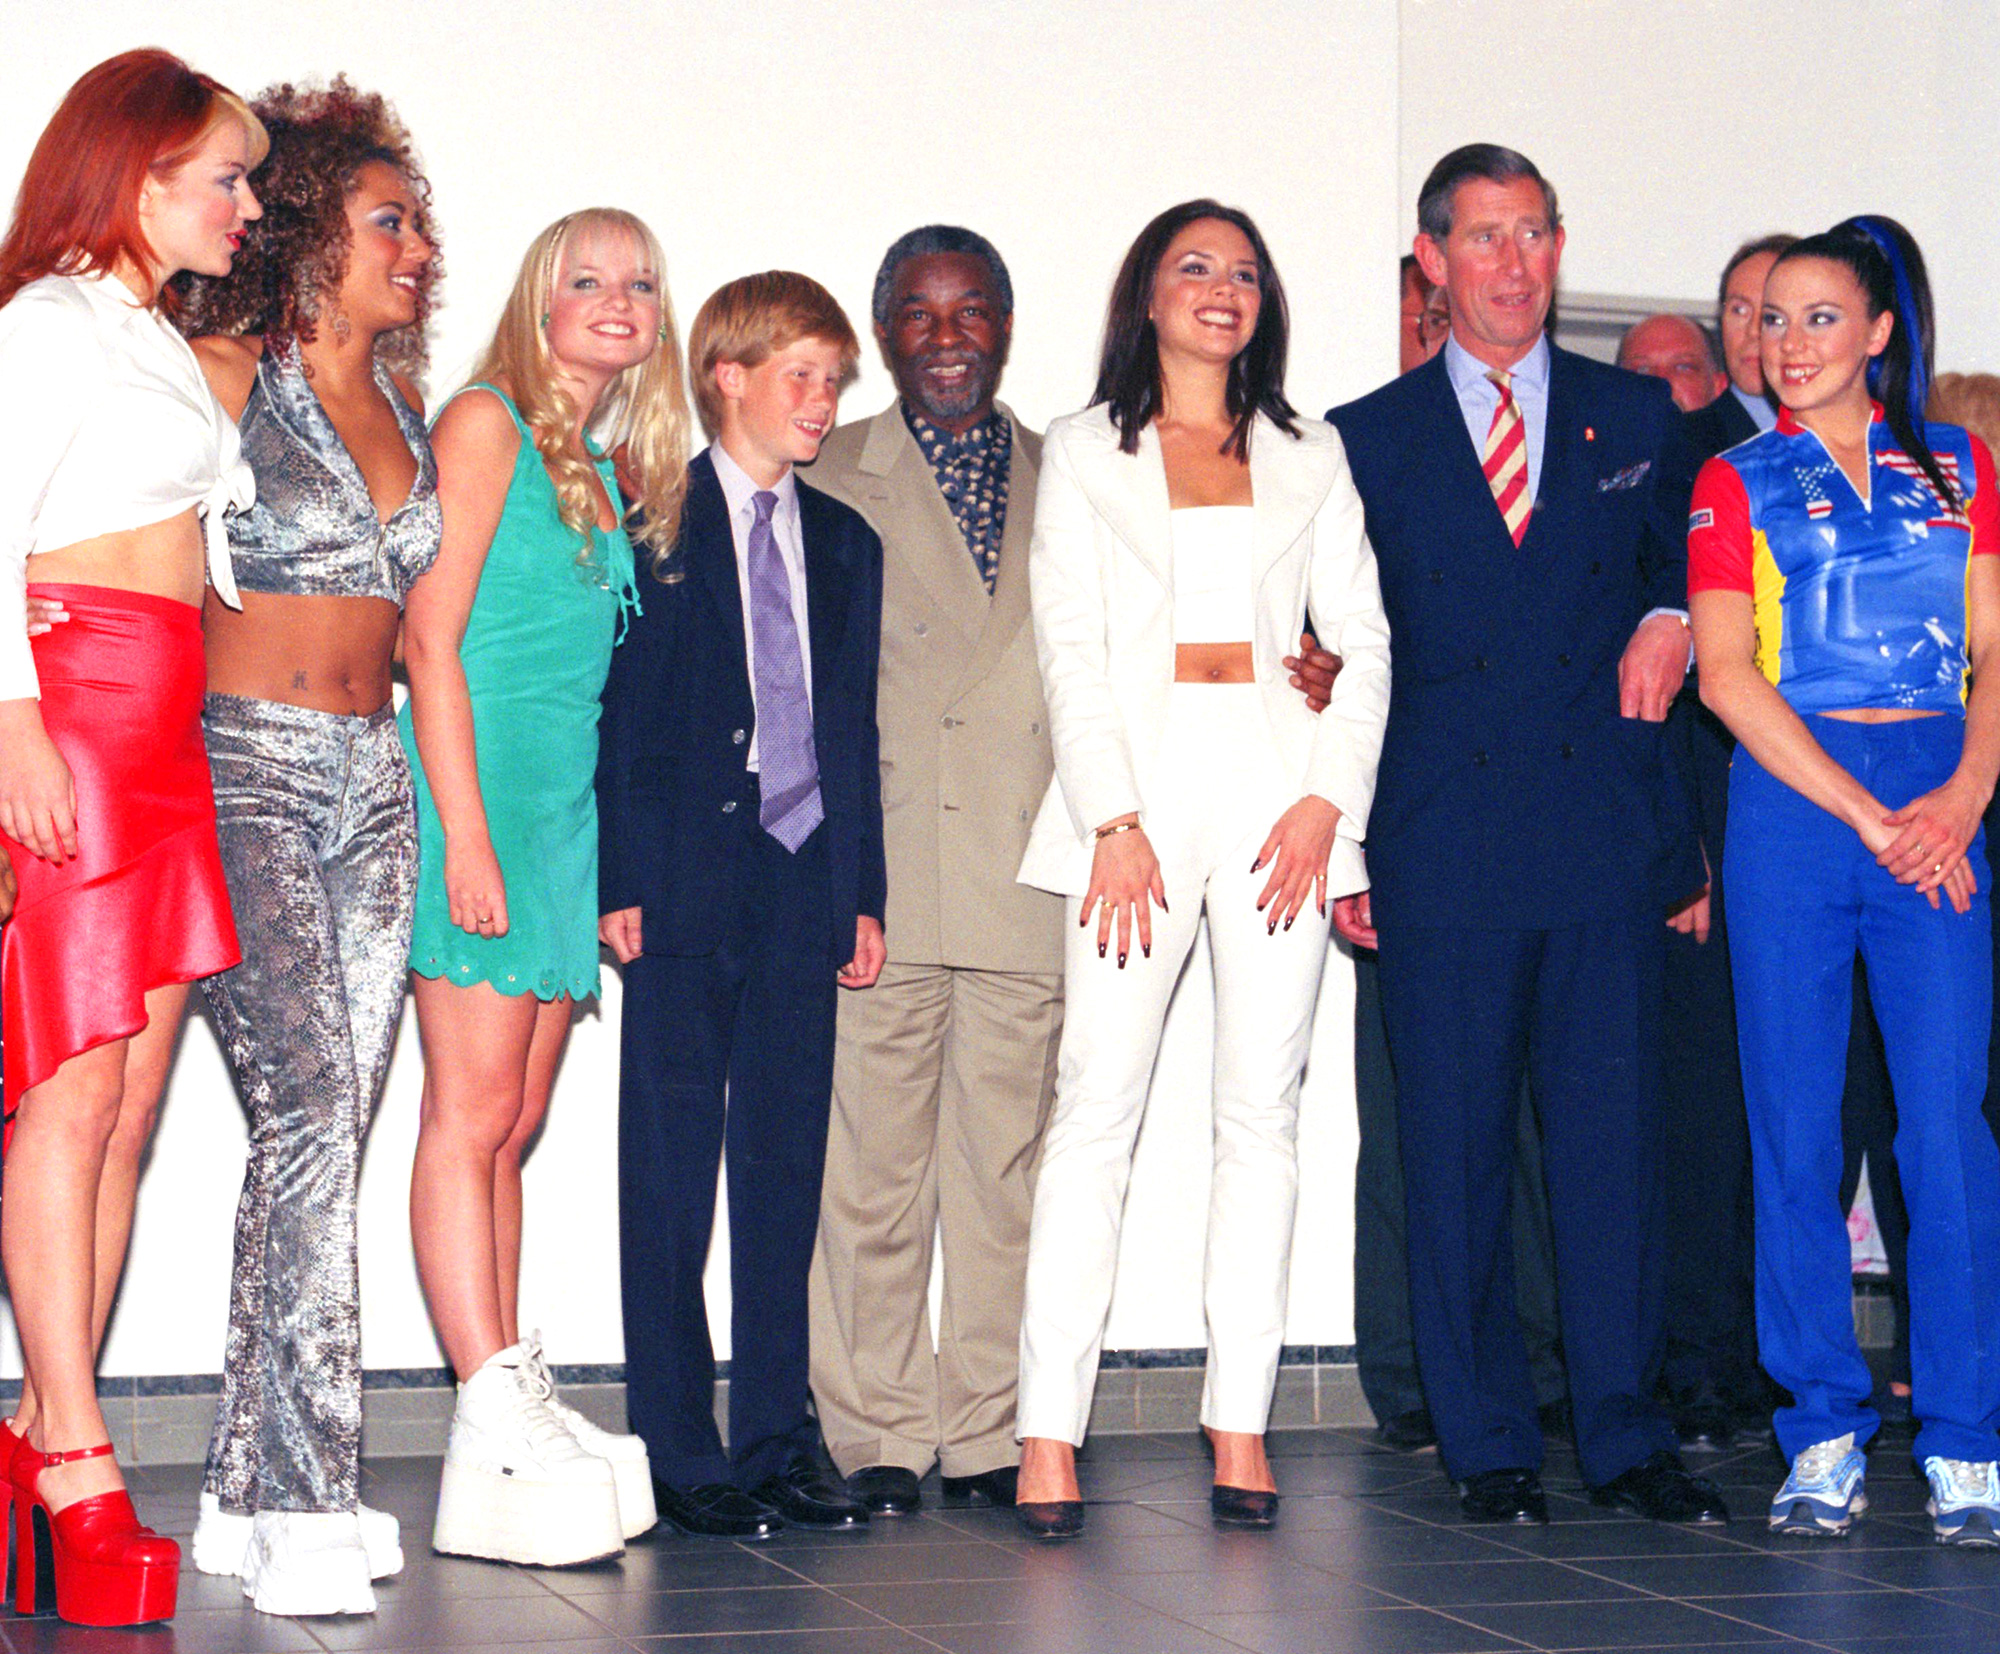 Prince Harrys 1997 Meet And Greet With The Spice Girls Resurfaces